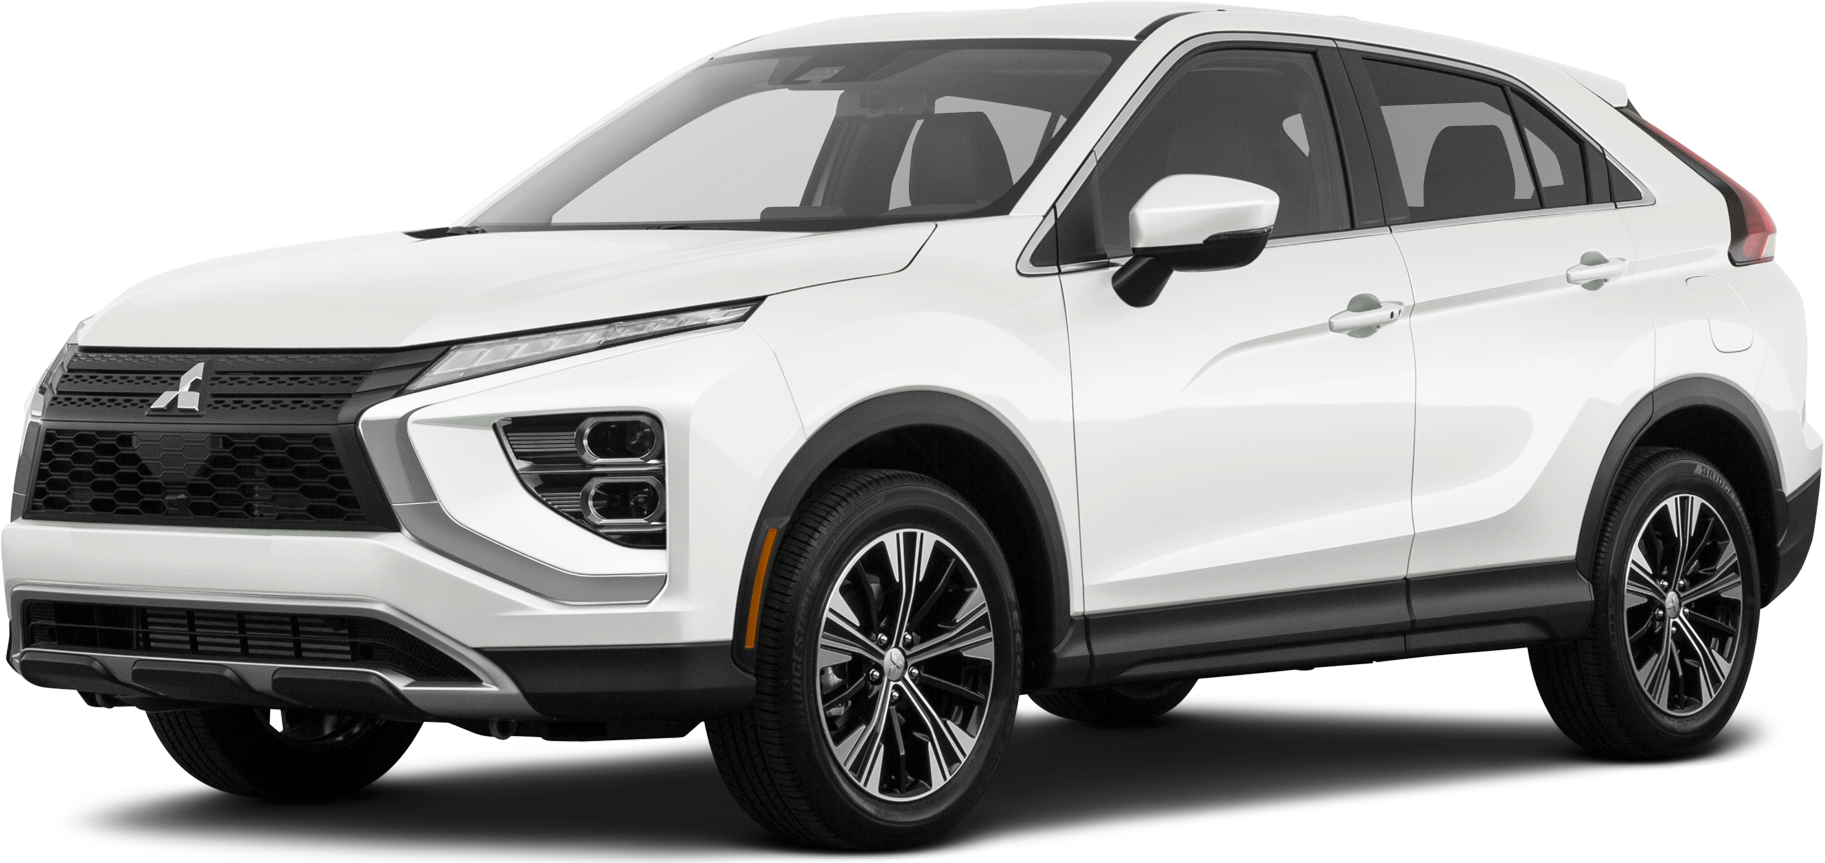 2022 Mitsubishi Eclipse Cross Reviews Pricing Specs Kelley Blue Book